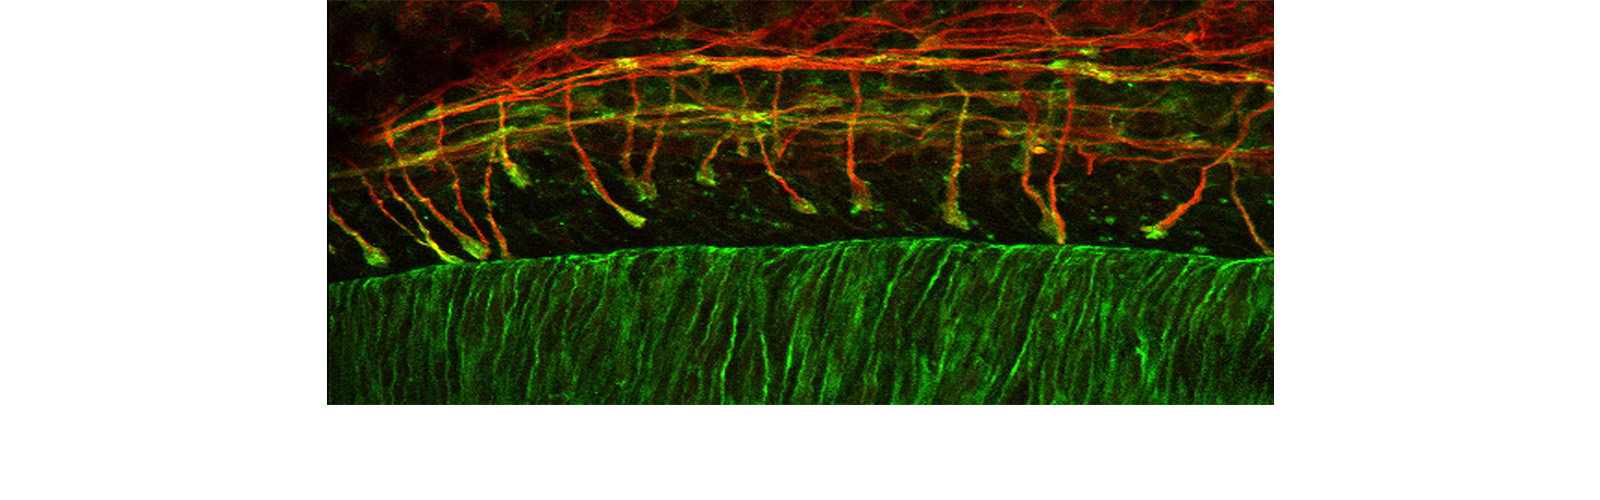 Spinal cord development